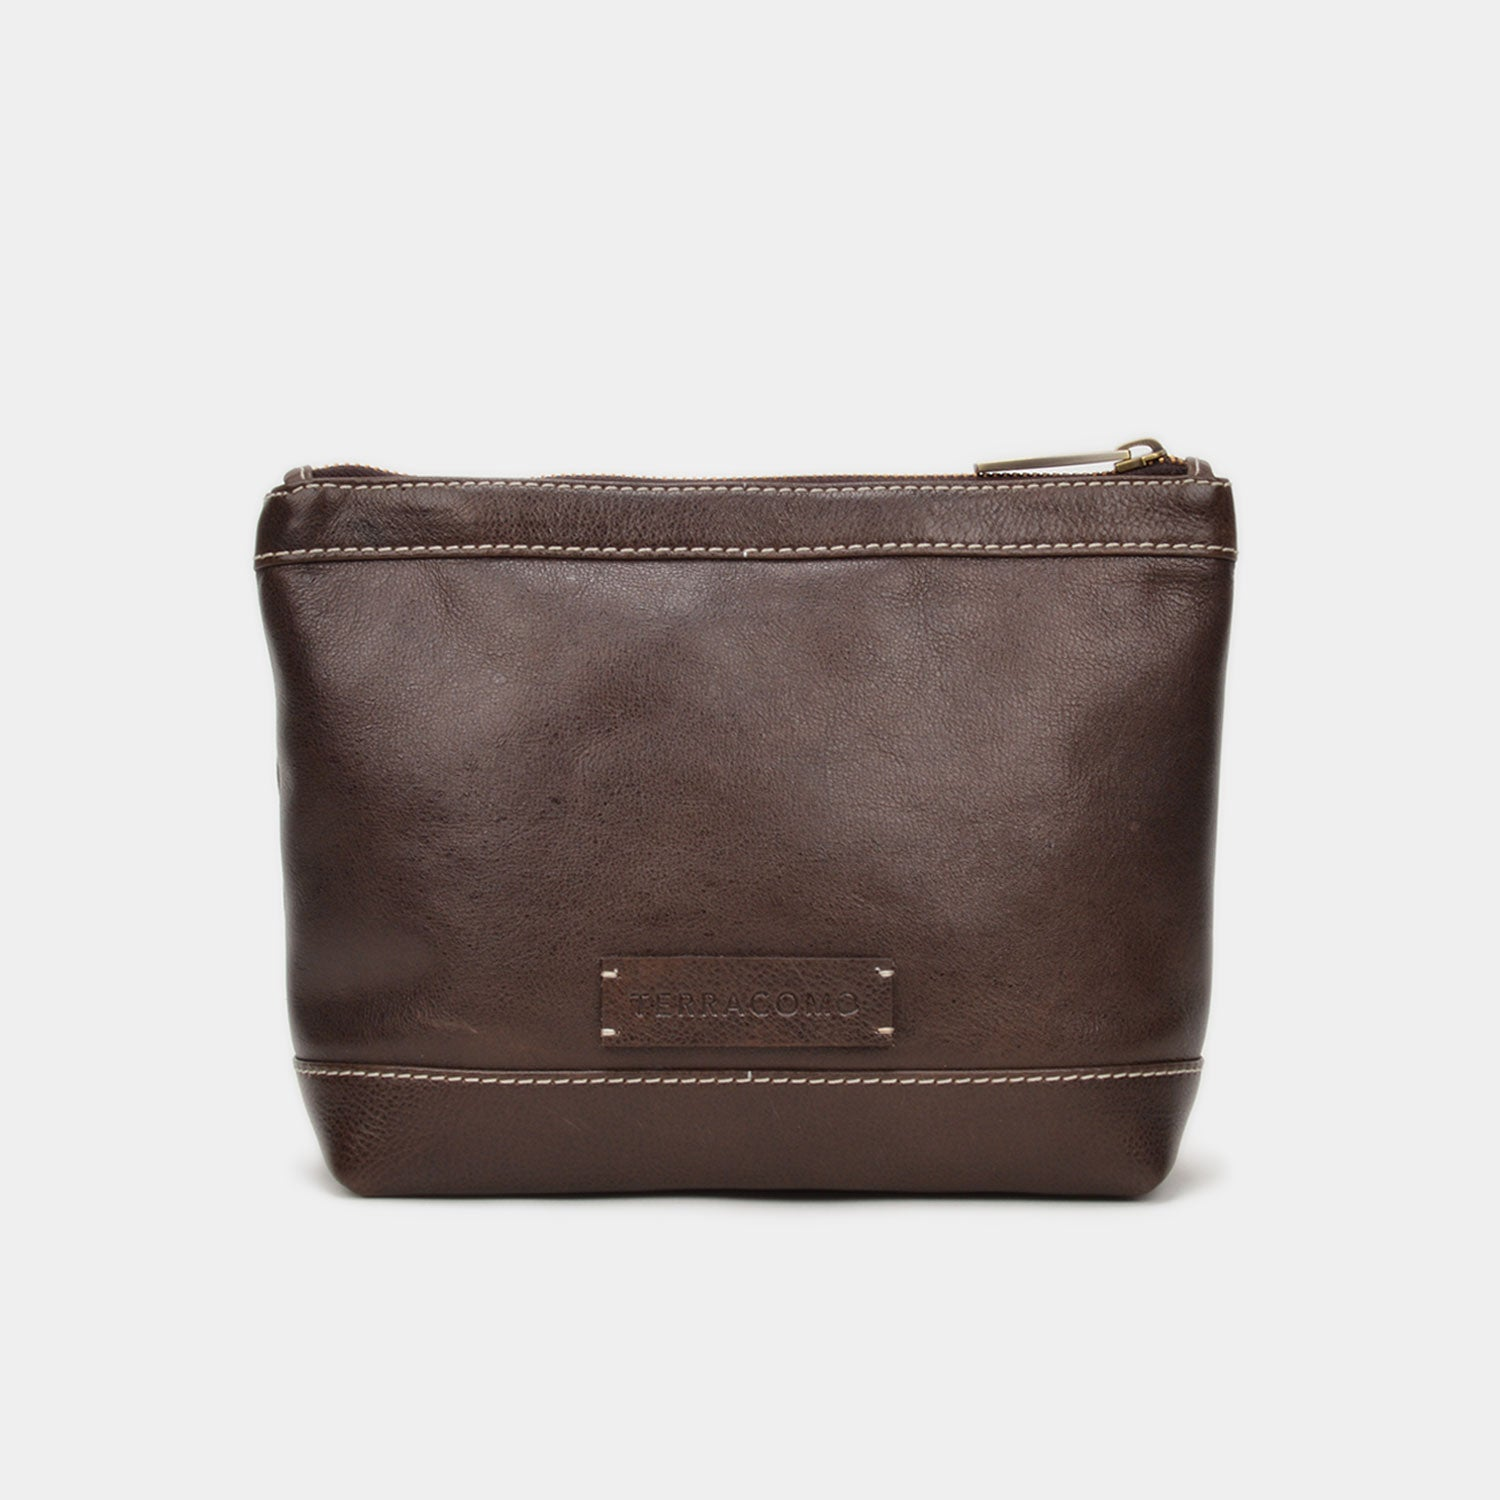 Nathan Travel Pouch